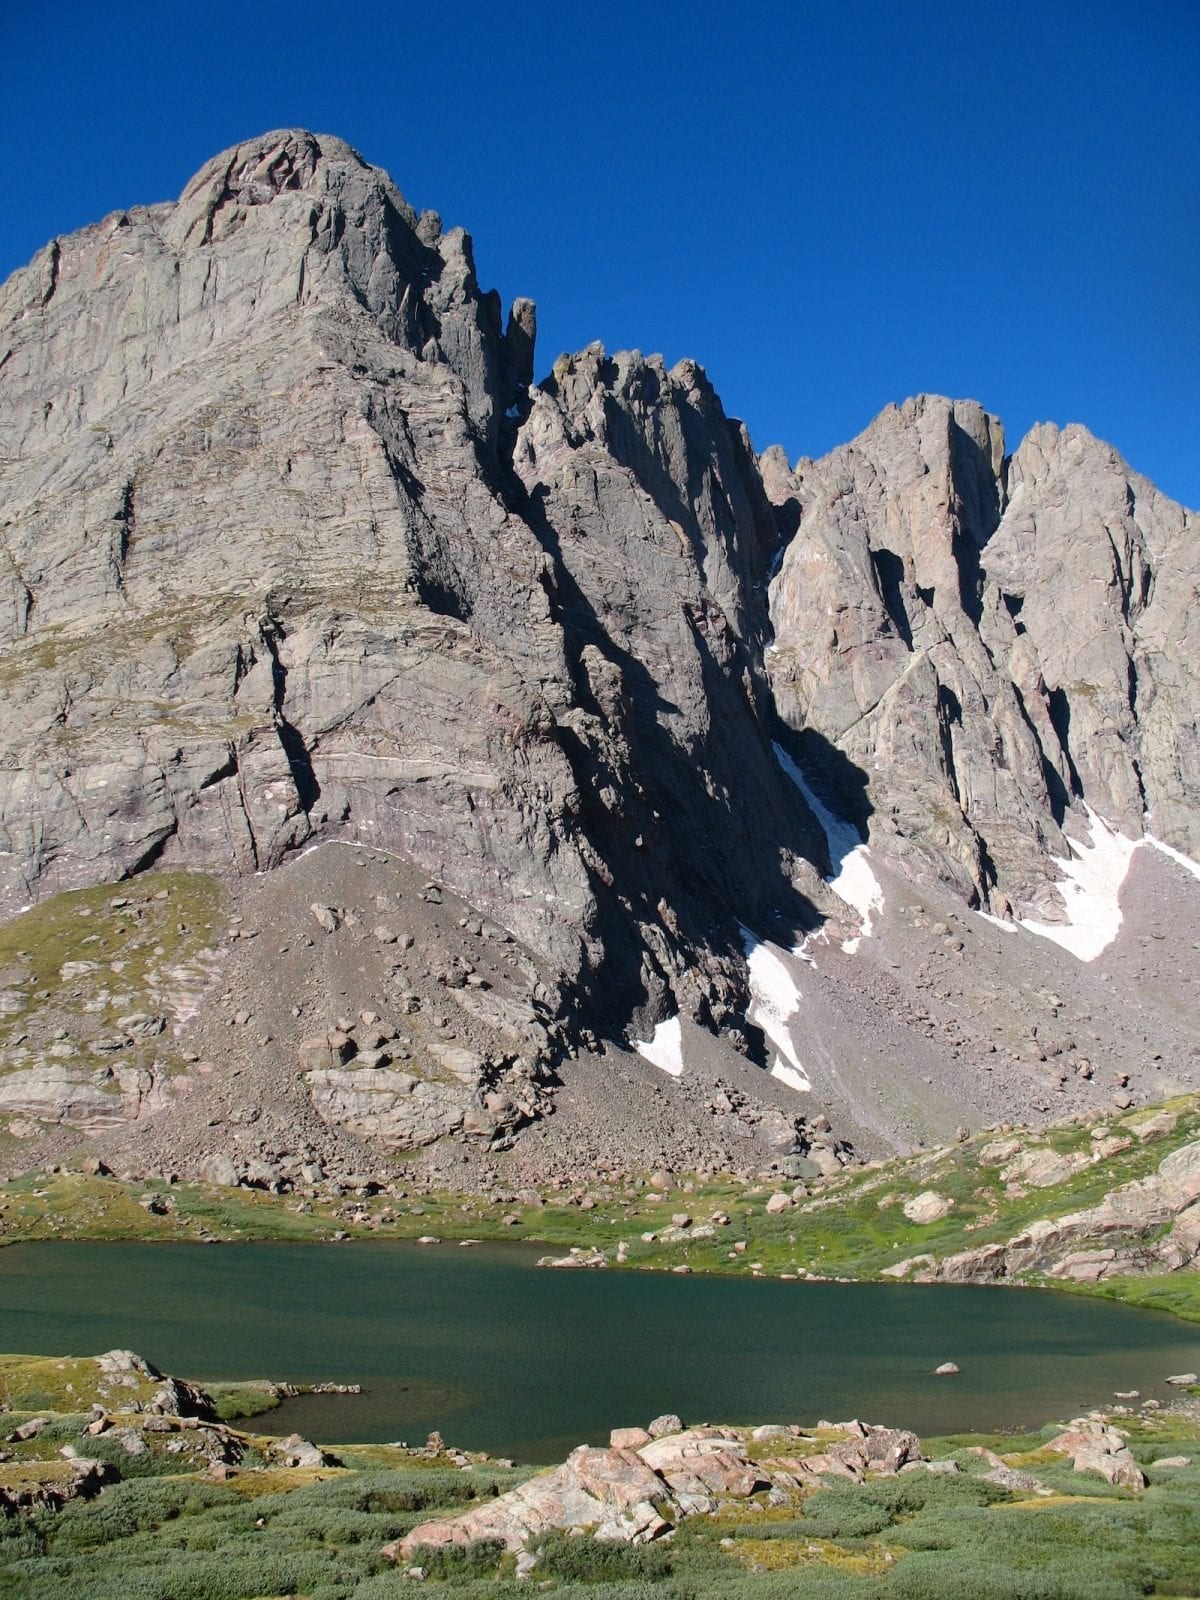 Crestone Needle rising over Lower South Colony Lake, CO